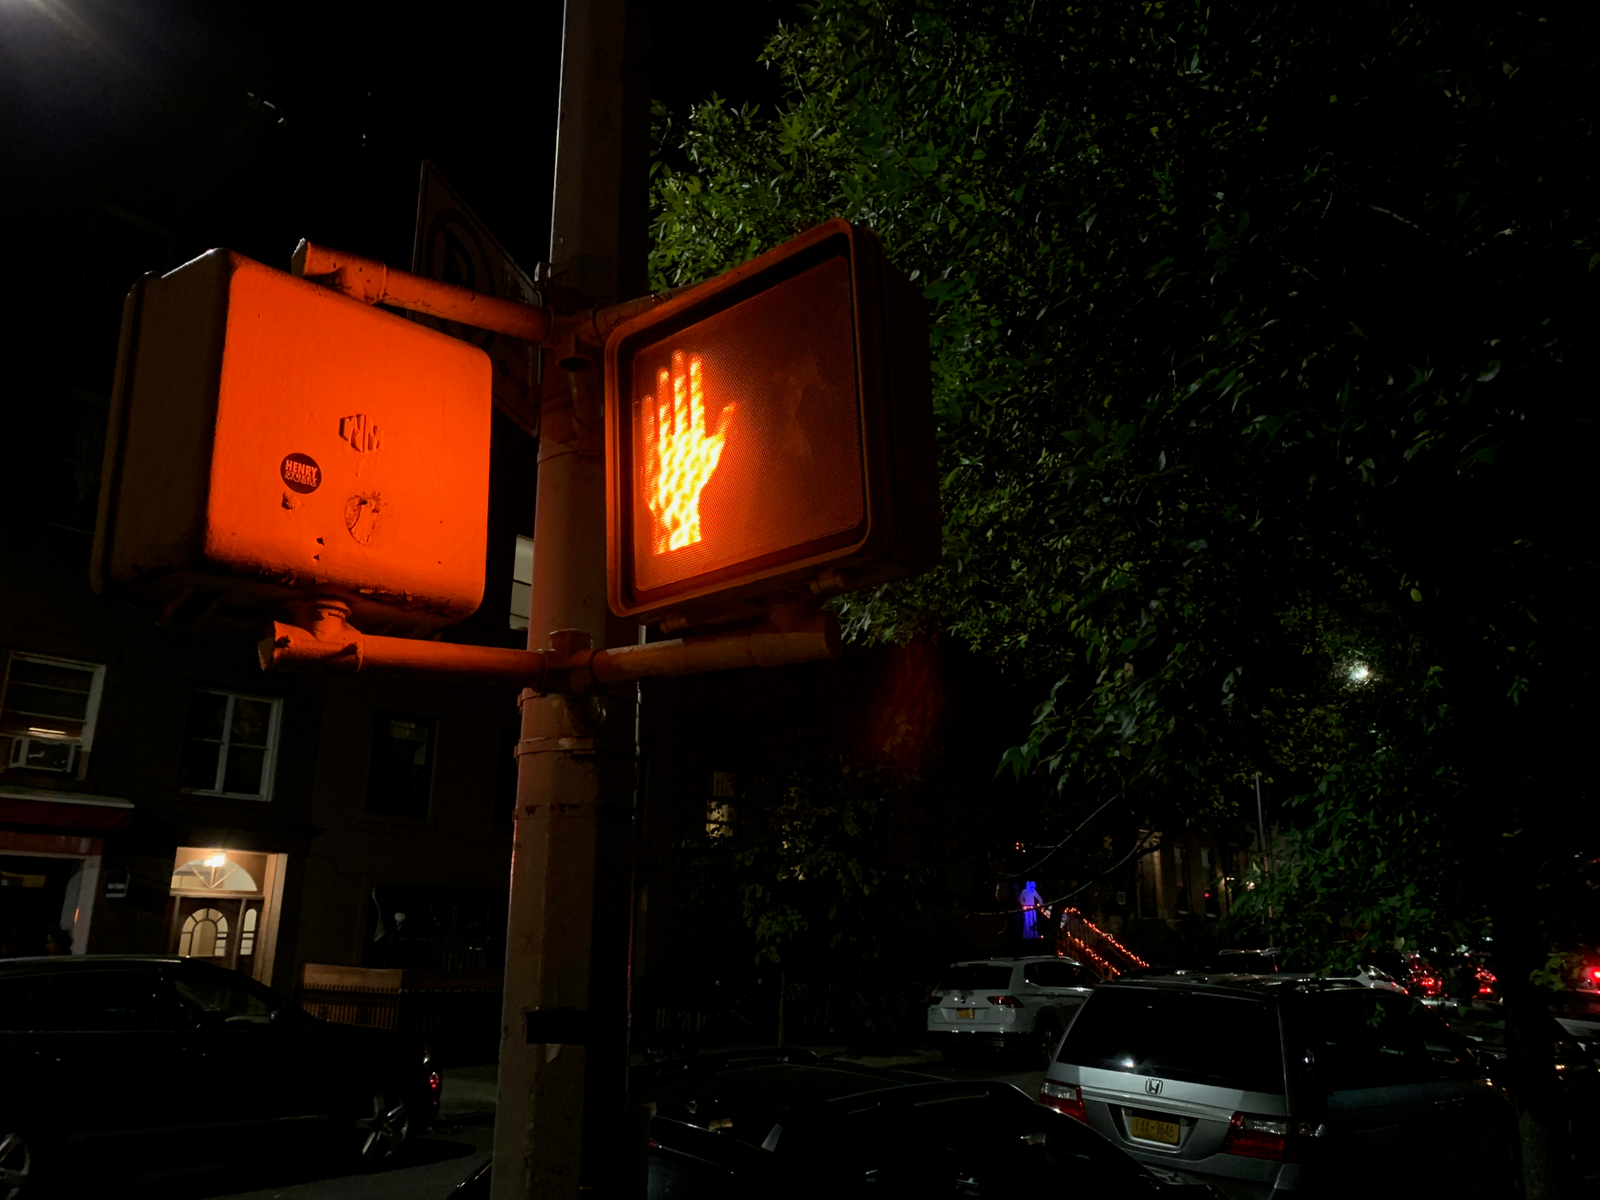 In this very dark night shot you can make out a lot more details in both the crossing sign and in the building entrance behind it.